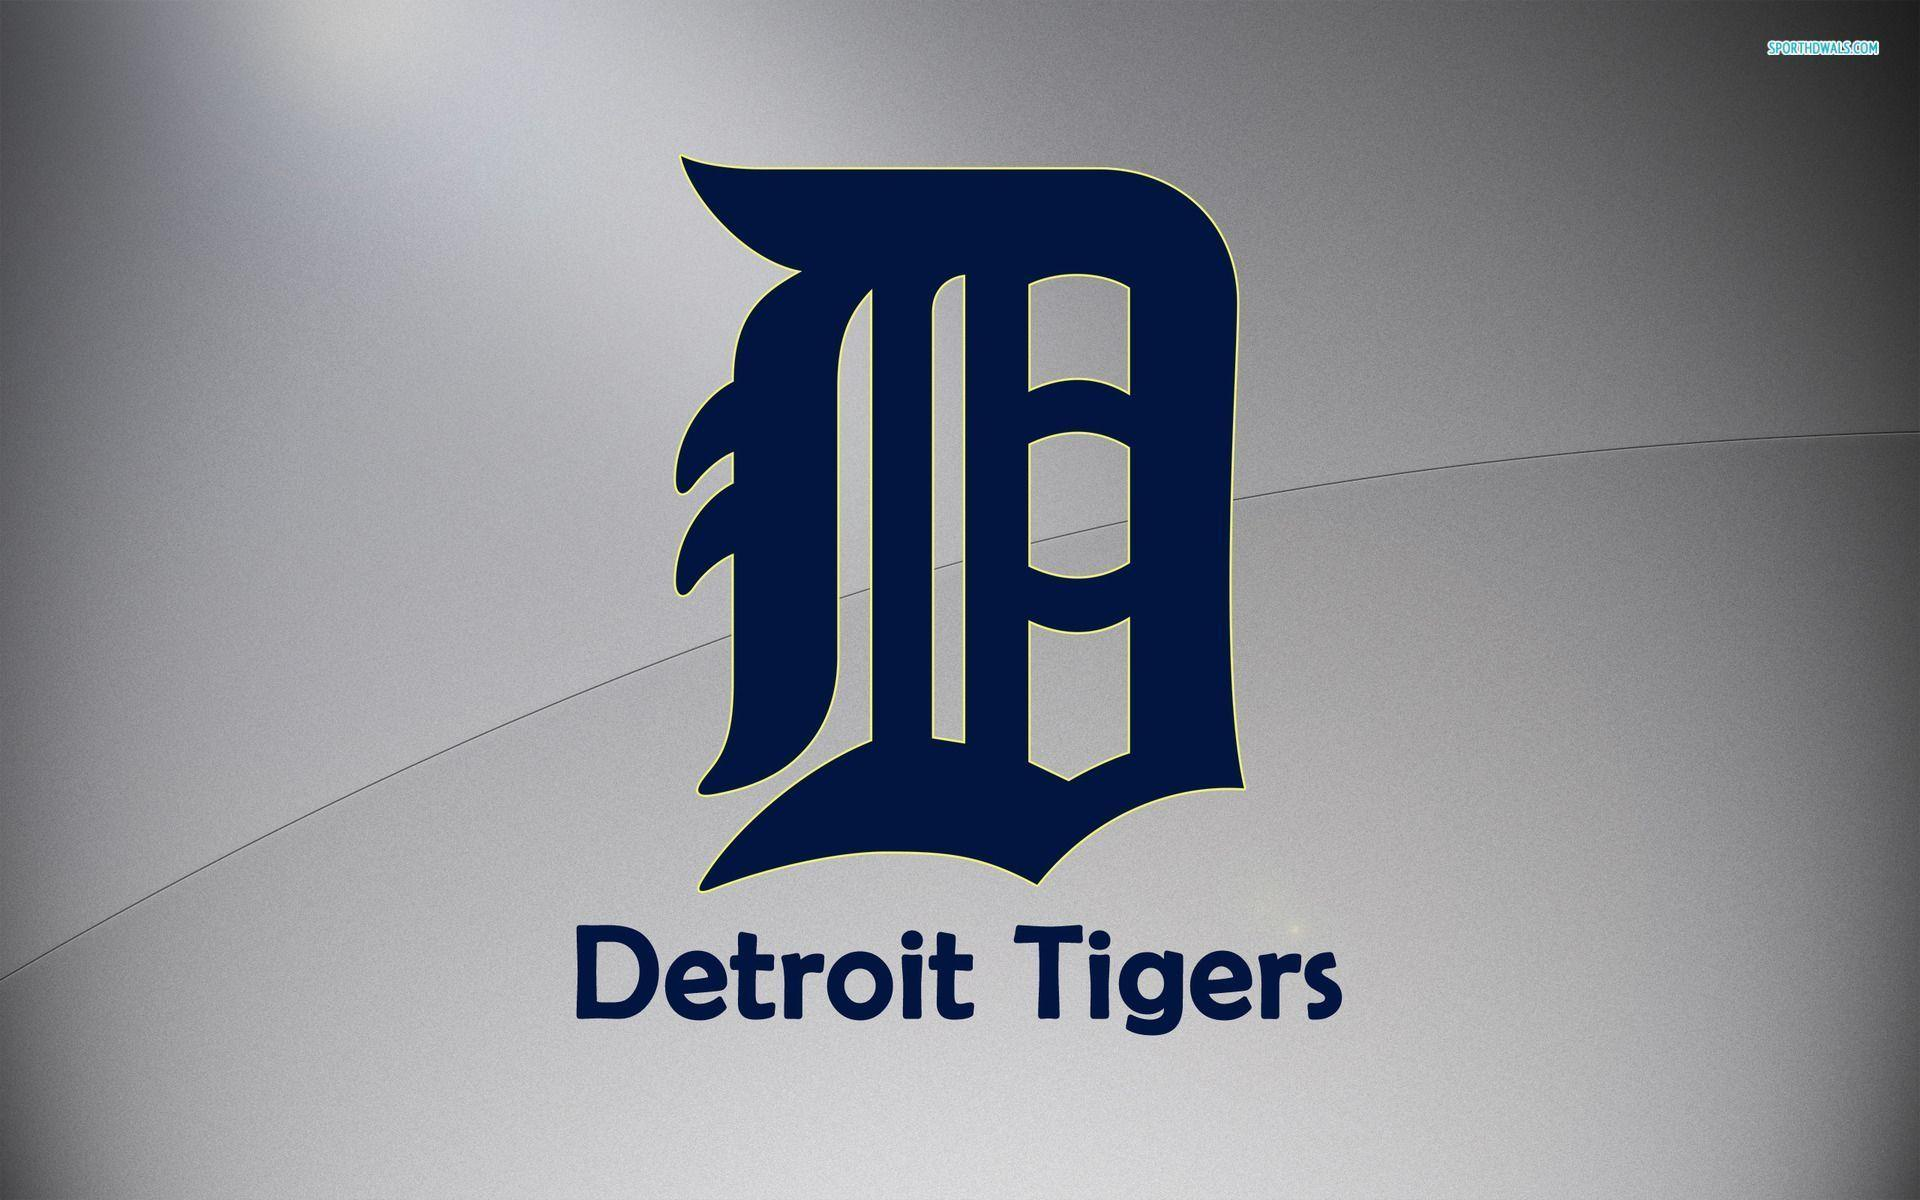 2015 Sports Cars Wallpaper Detroit Tigers Wallpapers 2015 Schedule Wallpaper Cave